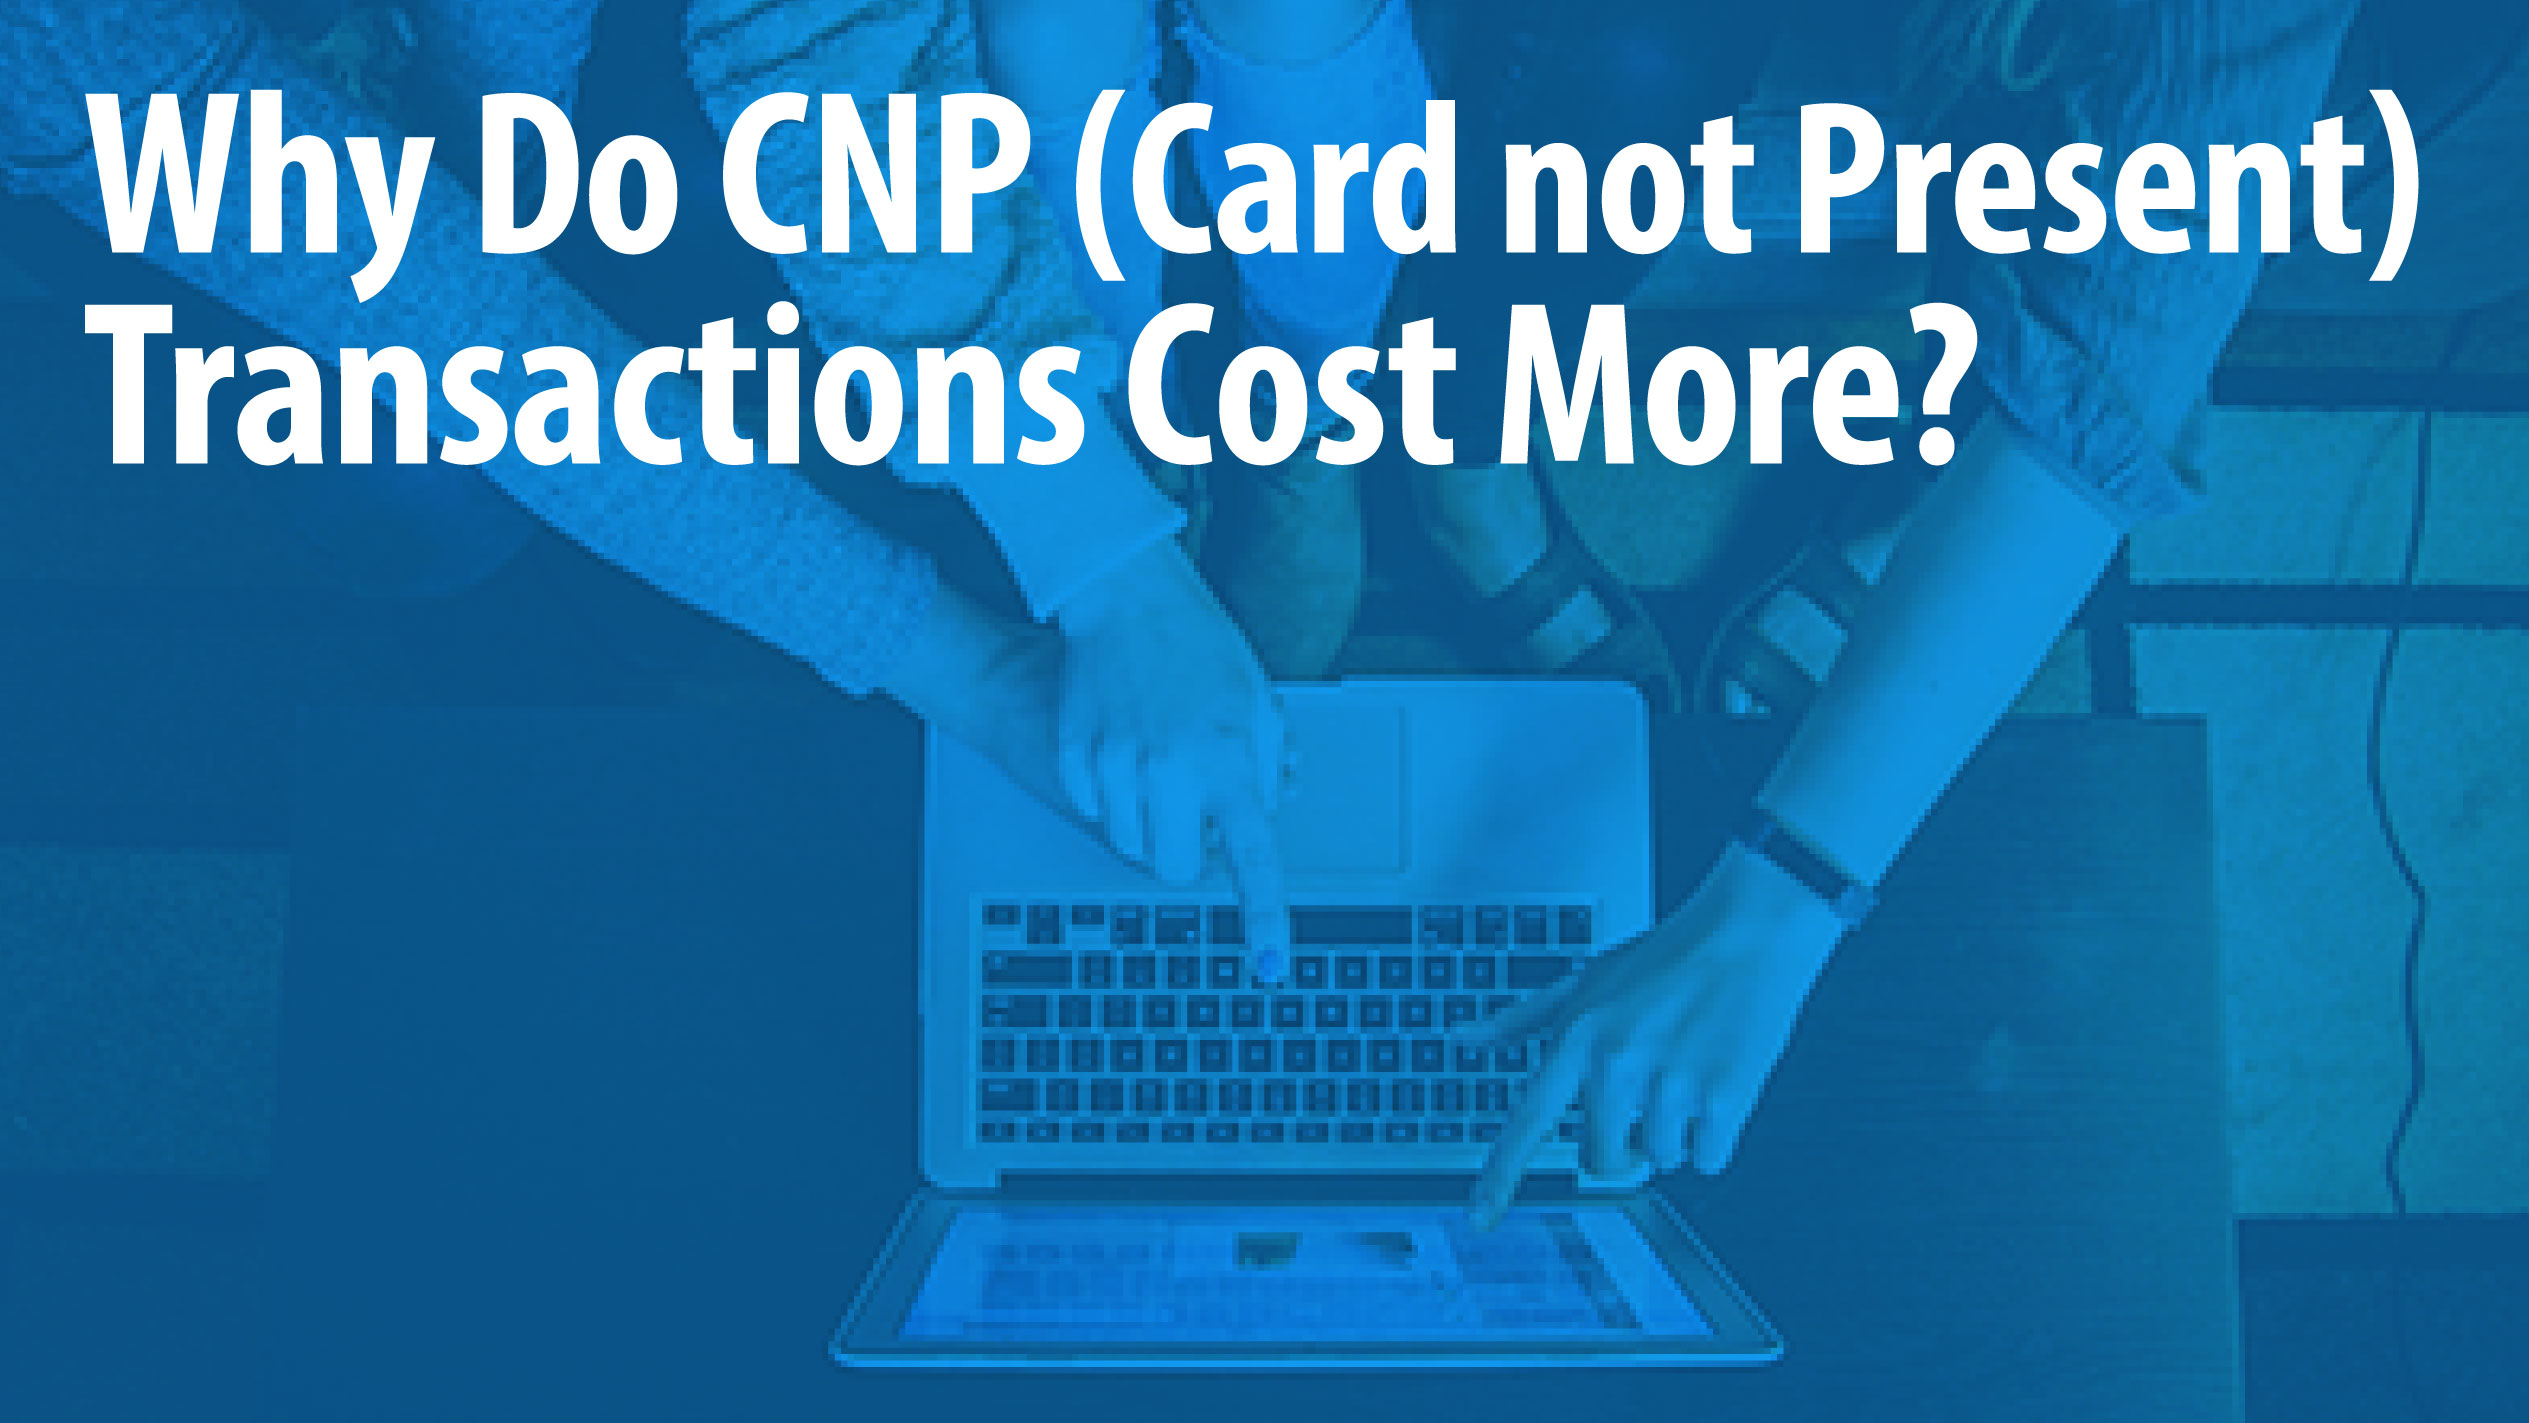 Why Do CNP (Card not Present) Transactions Cost More?